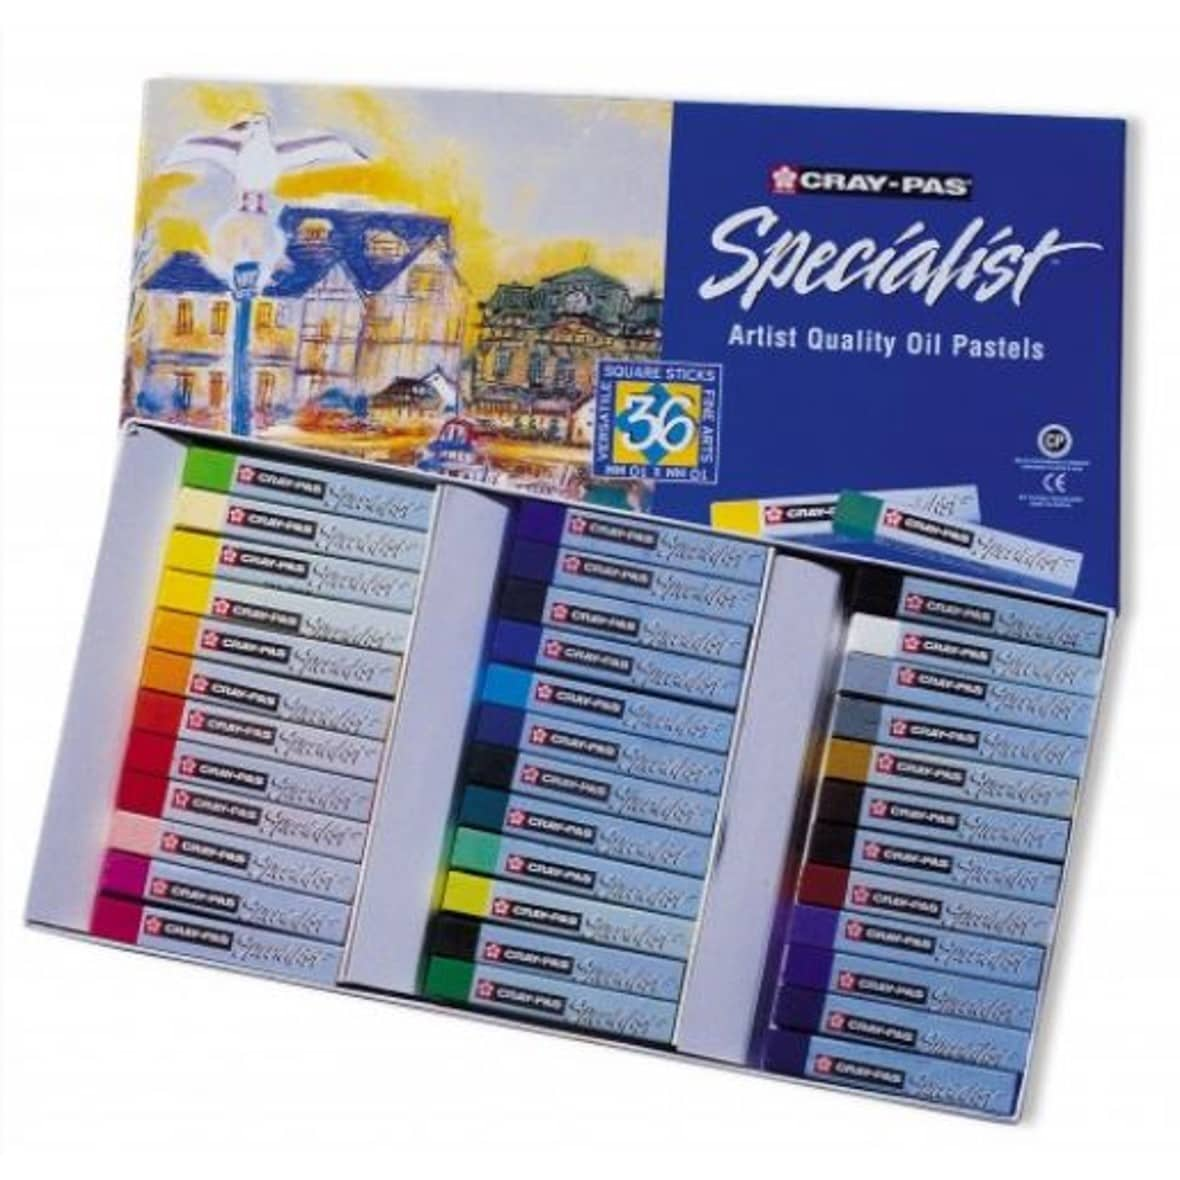 Cray Pas Specialist Oil Pastels - 36 pack